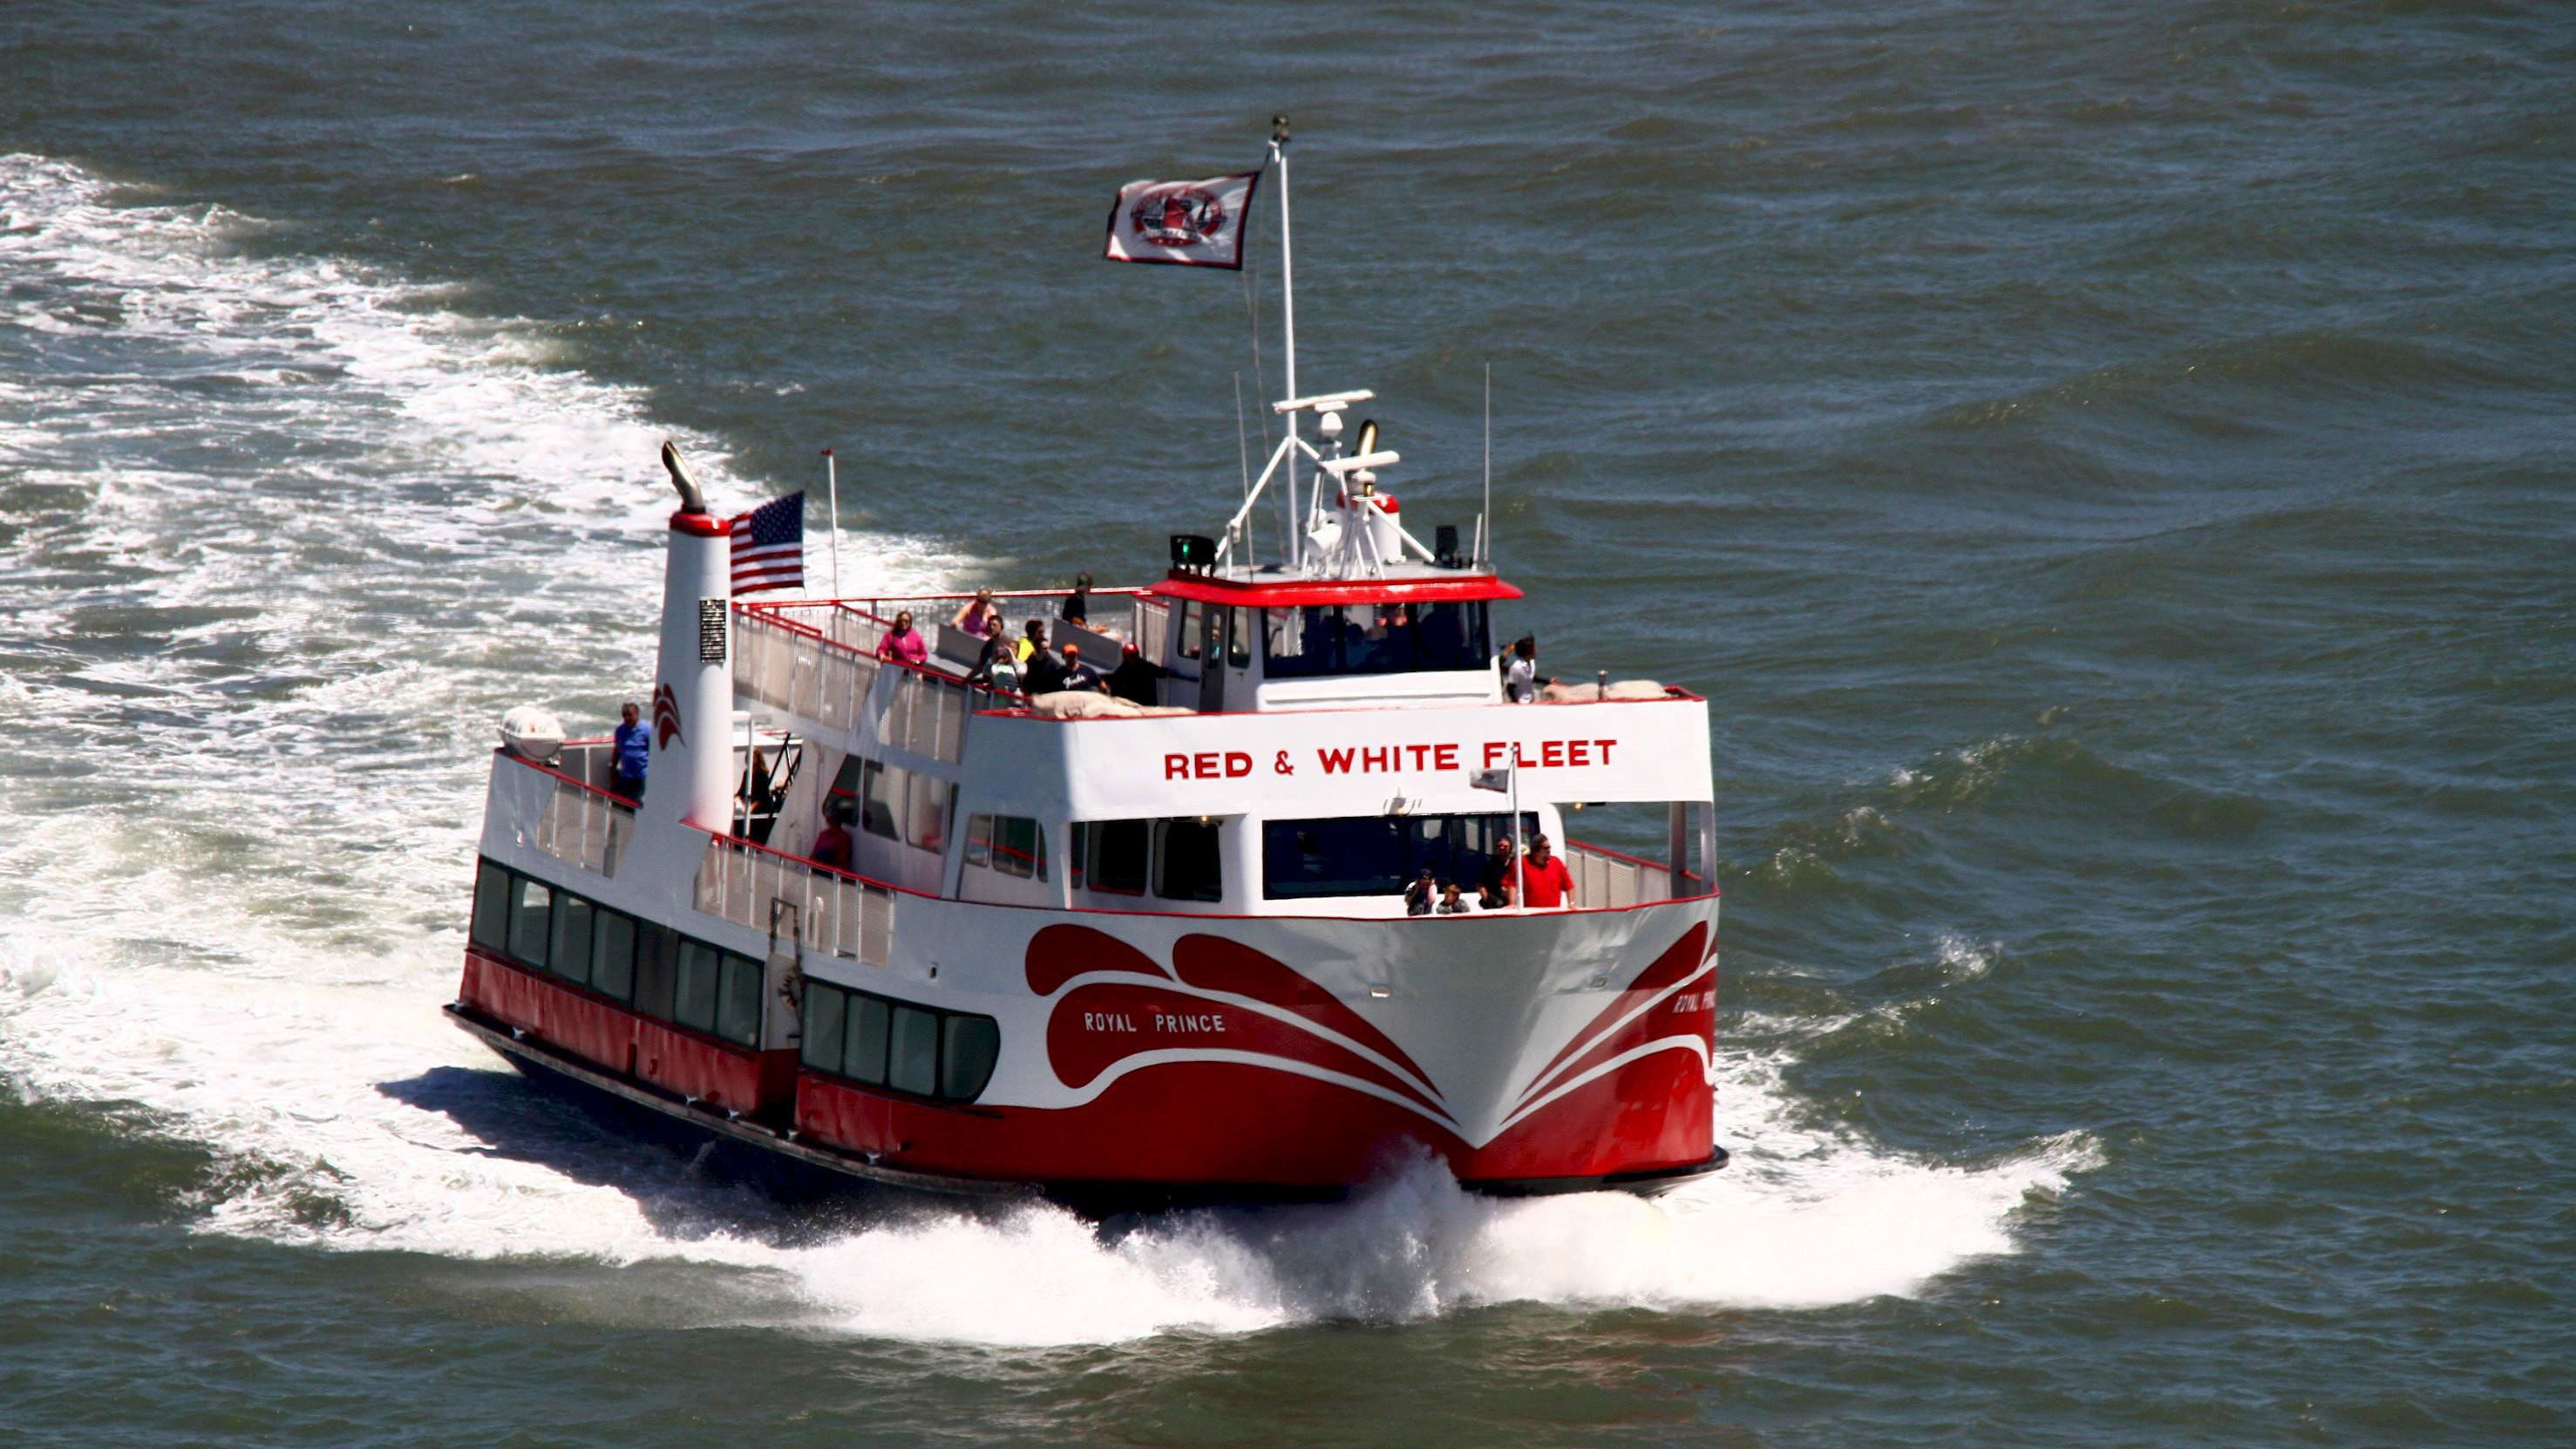 Red and White Fleet tour boat on the water in San Francisco